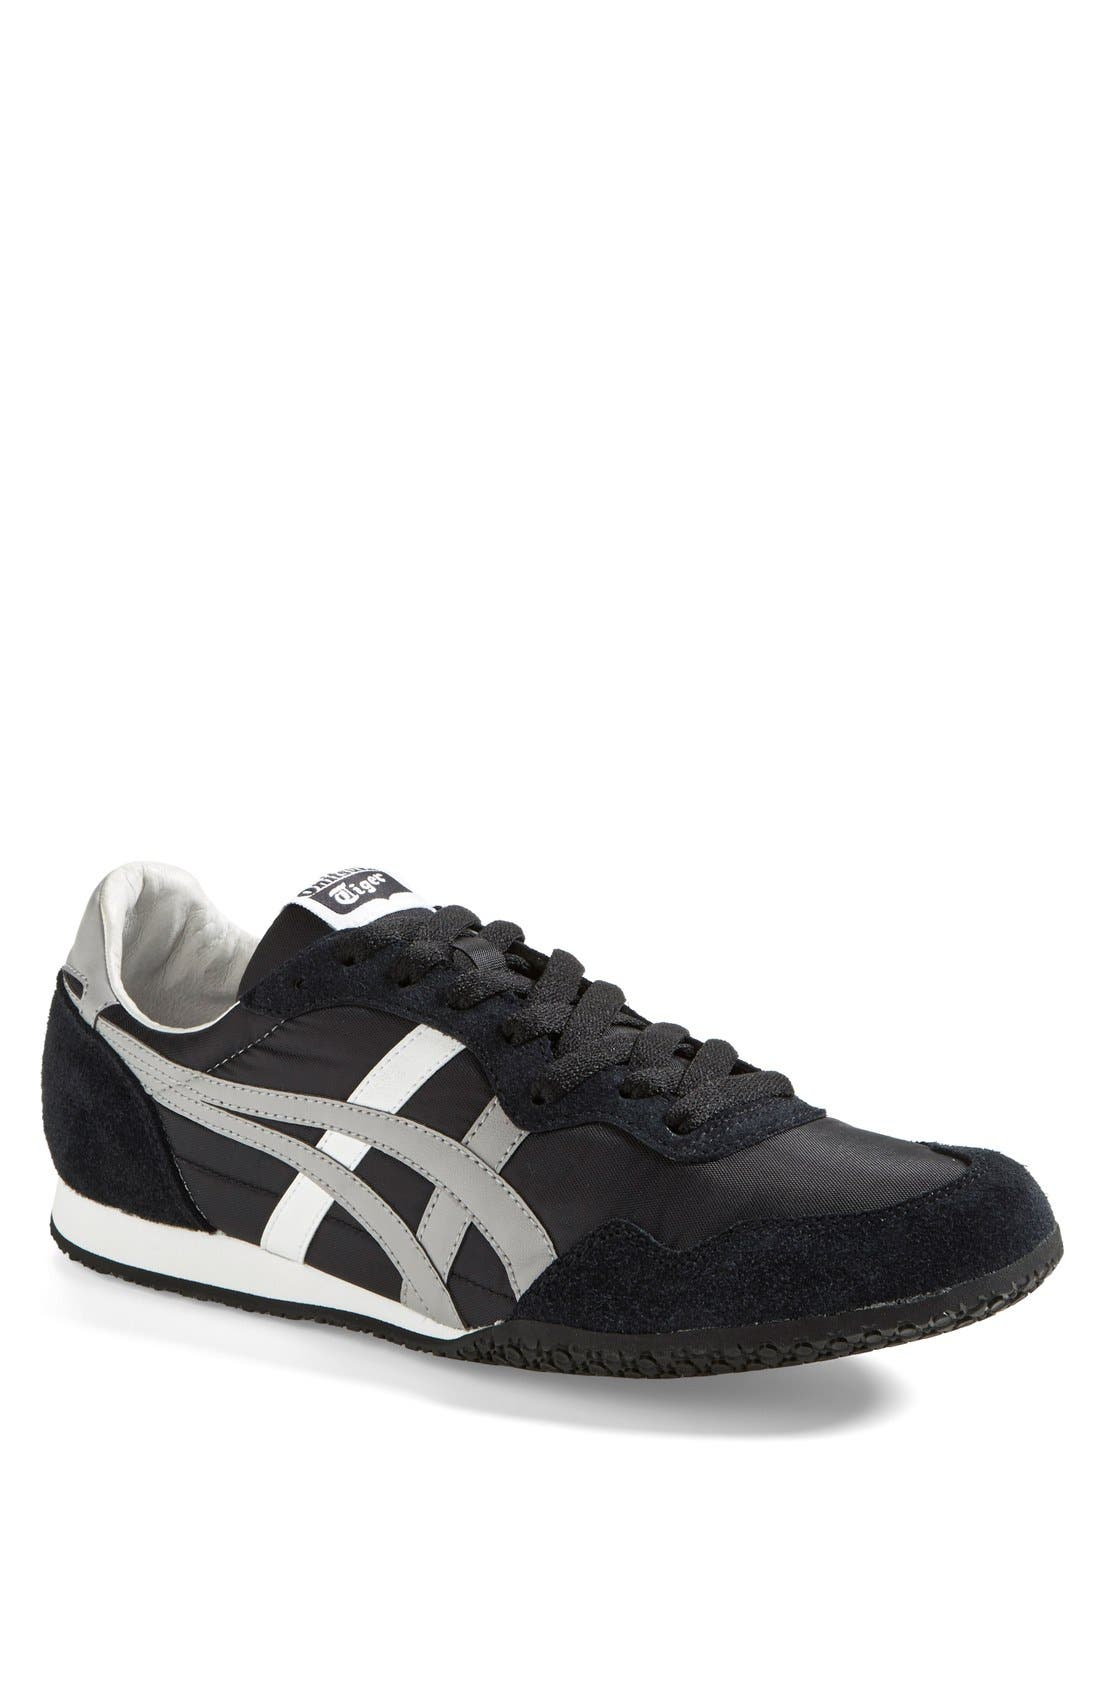 Alternate Image 1 Selected - Onitsuka Tiger™ 'Serrano' Sneaker (Men)